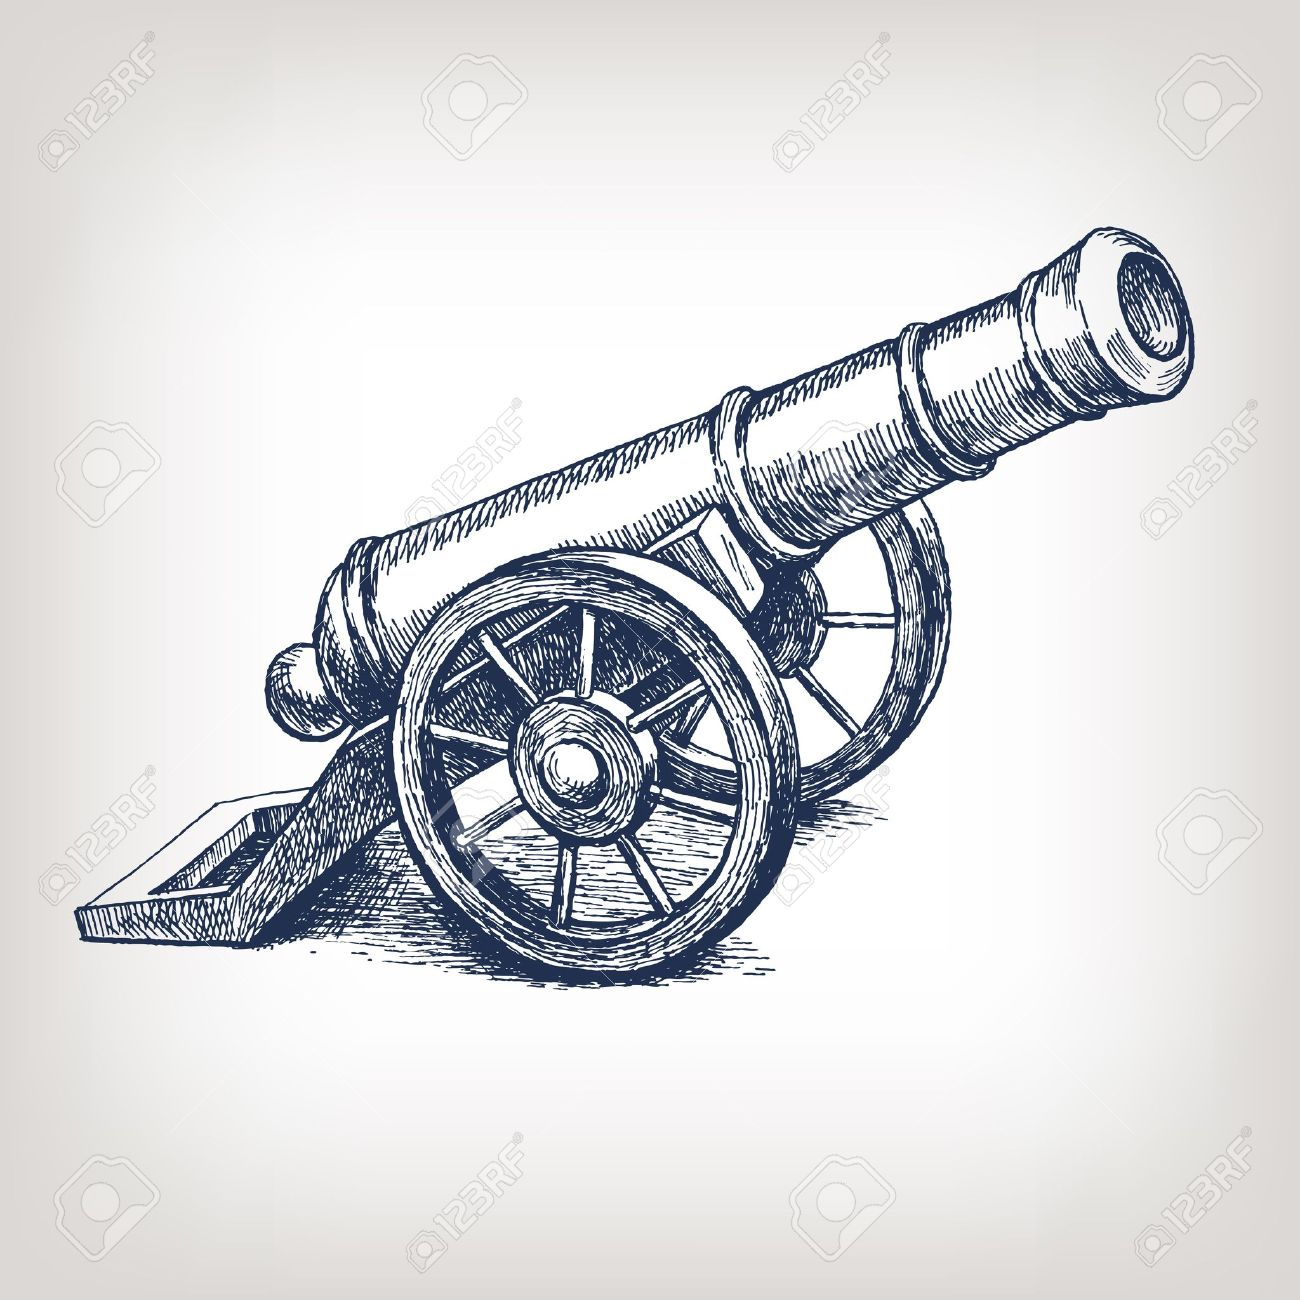 Vector ancient cannon vintage ink engraving illustration arm weapon hand drawn doodle sketch - 13486699